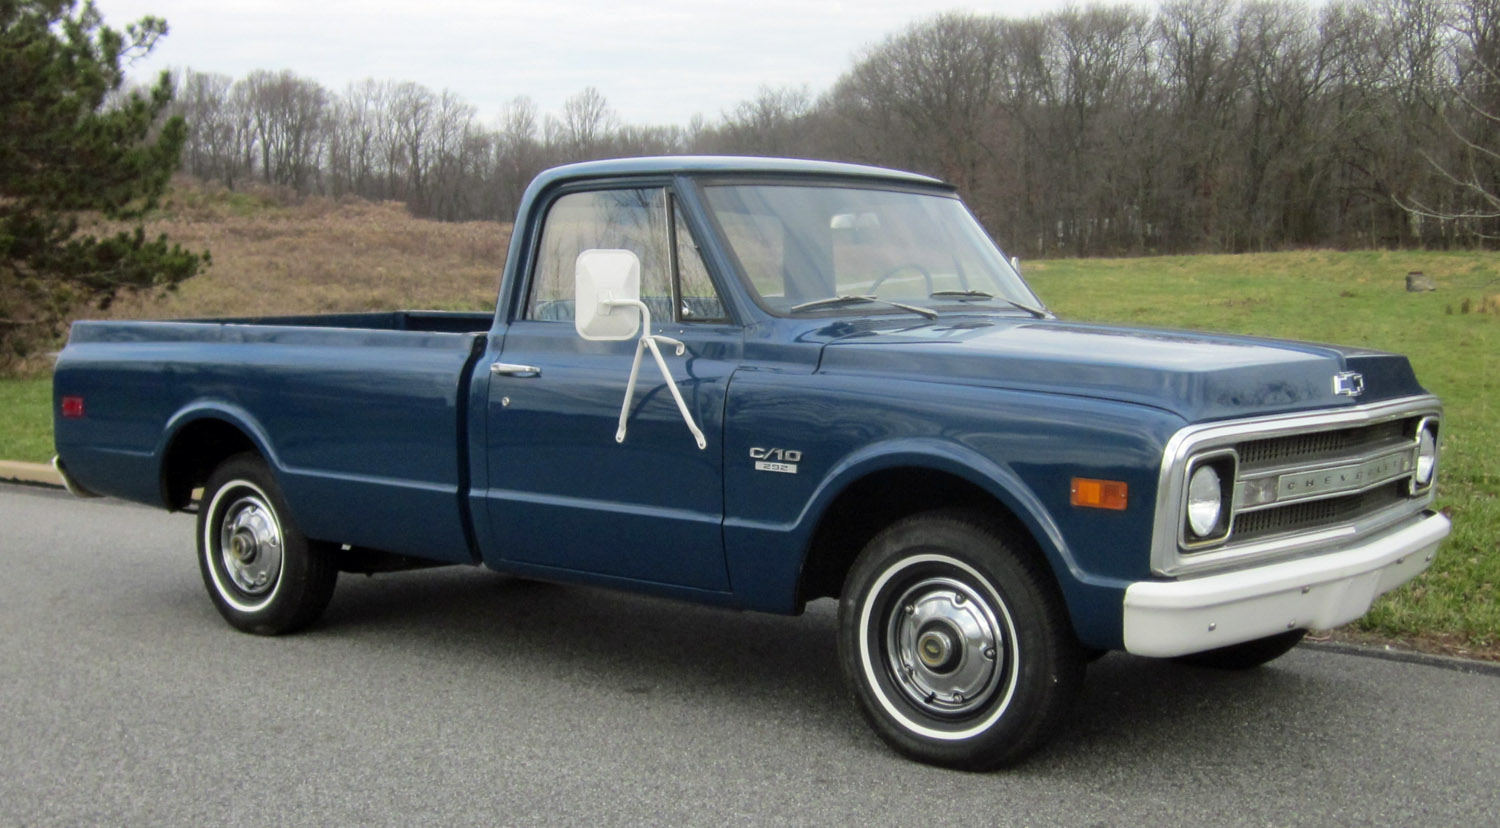 Pickup chevy c10 pickup truck : 1969 Chevrolet C10 | Connors Motorcar Company